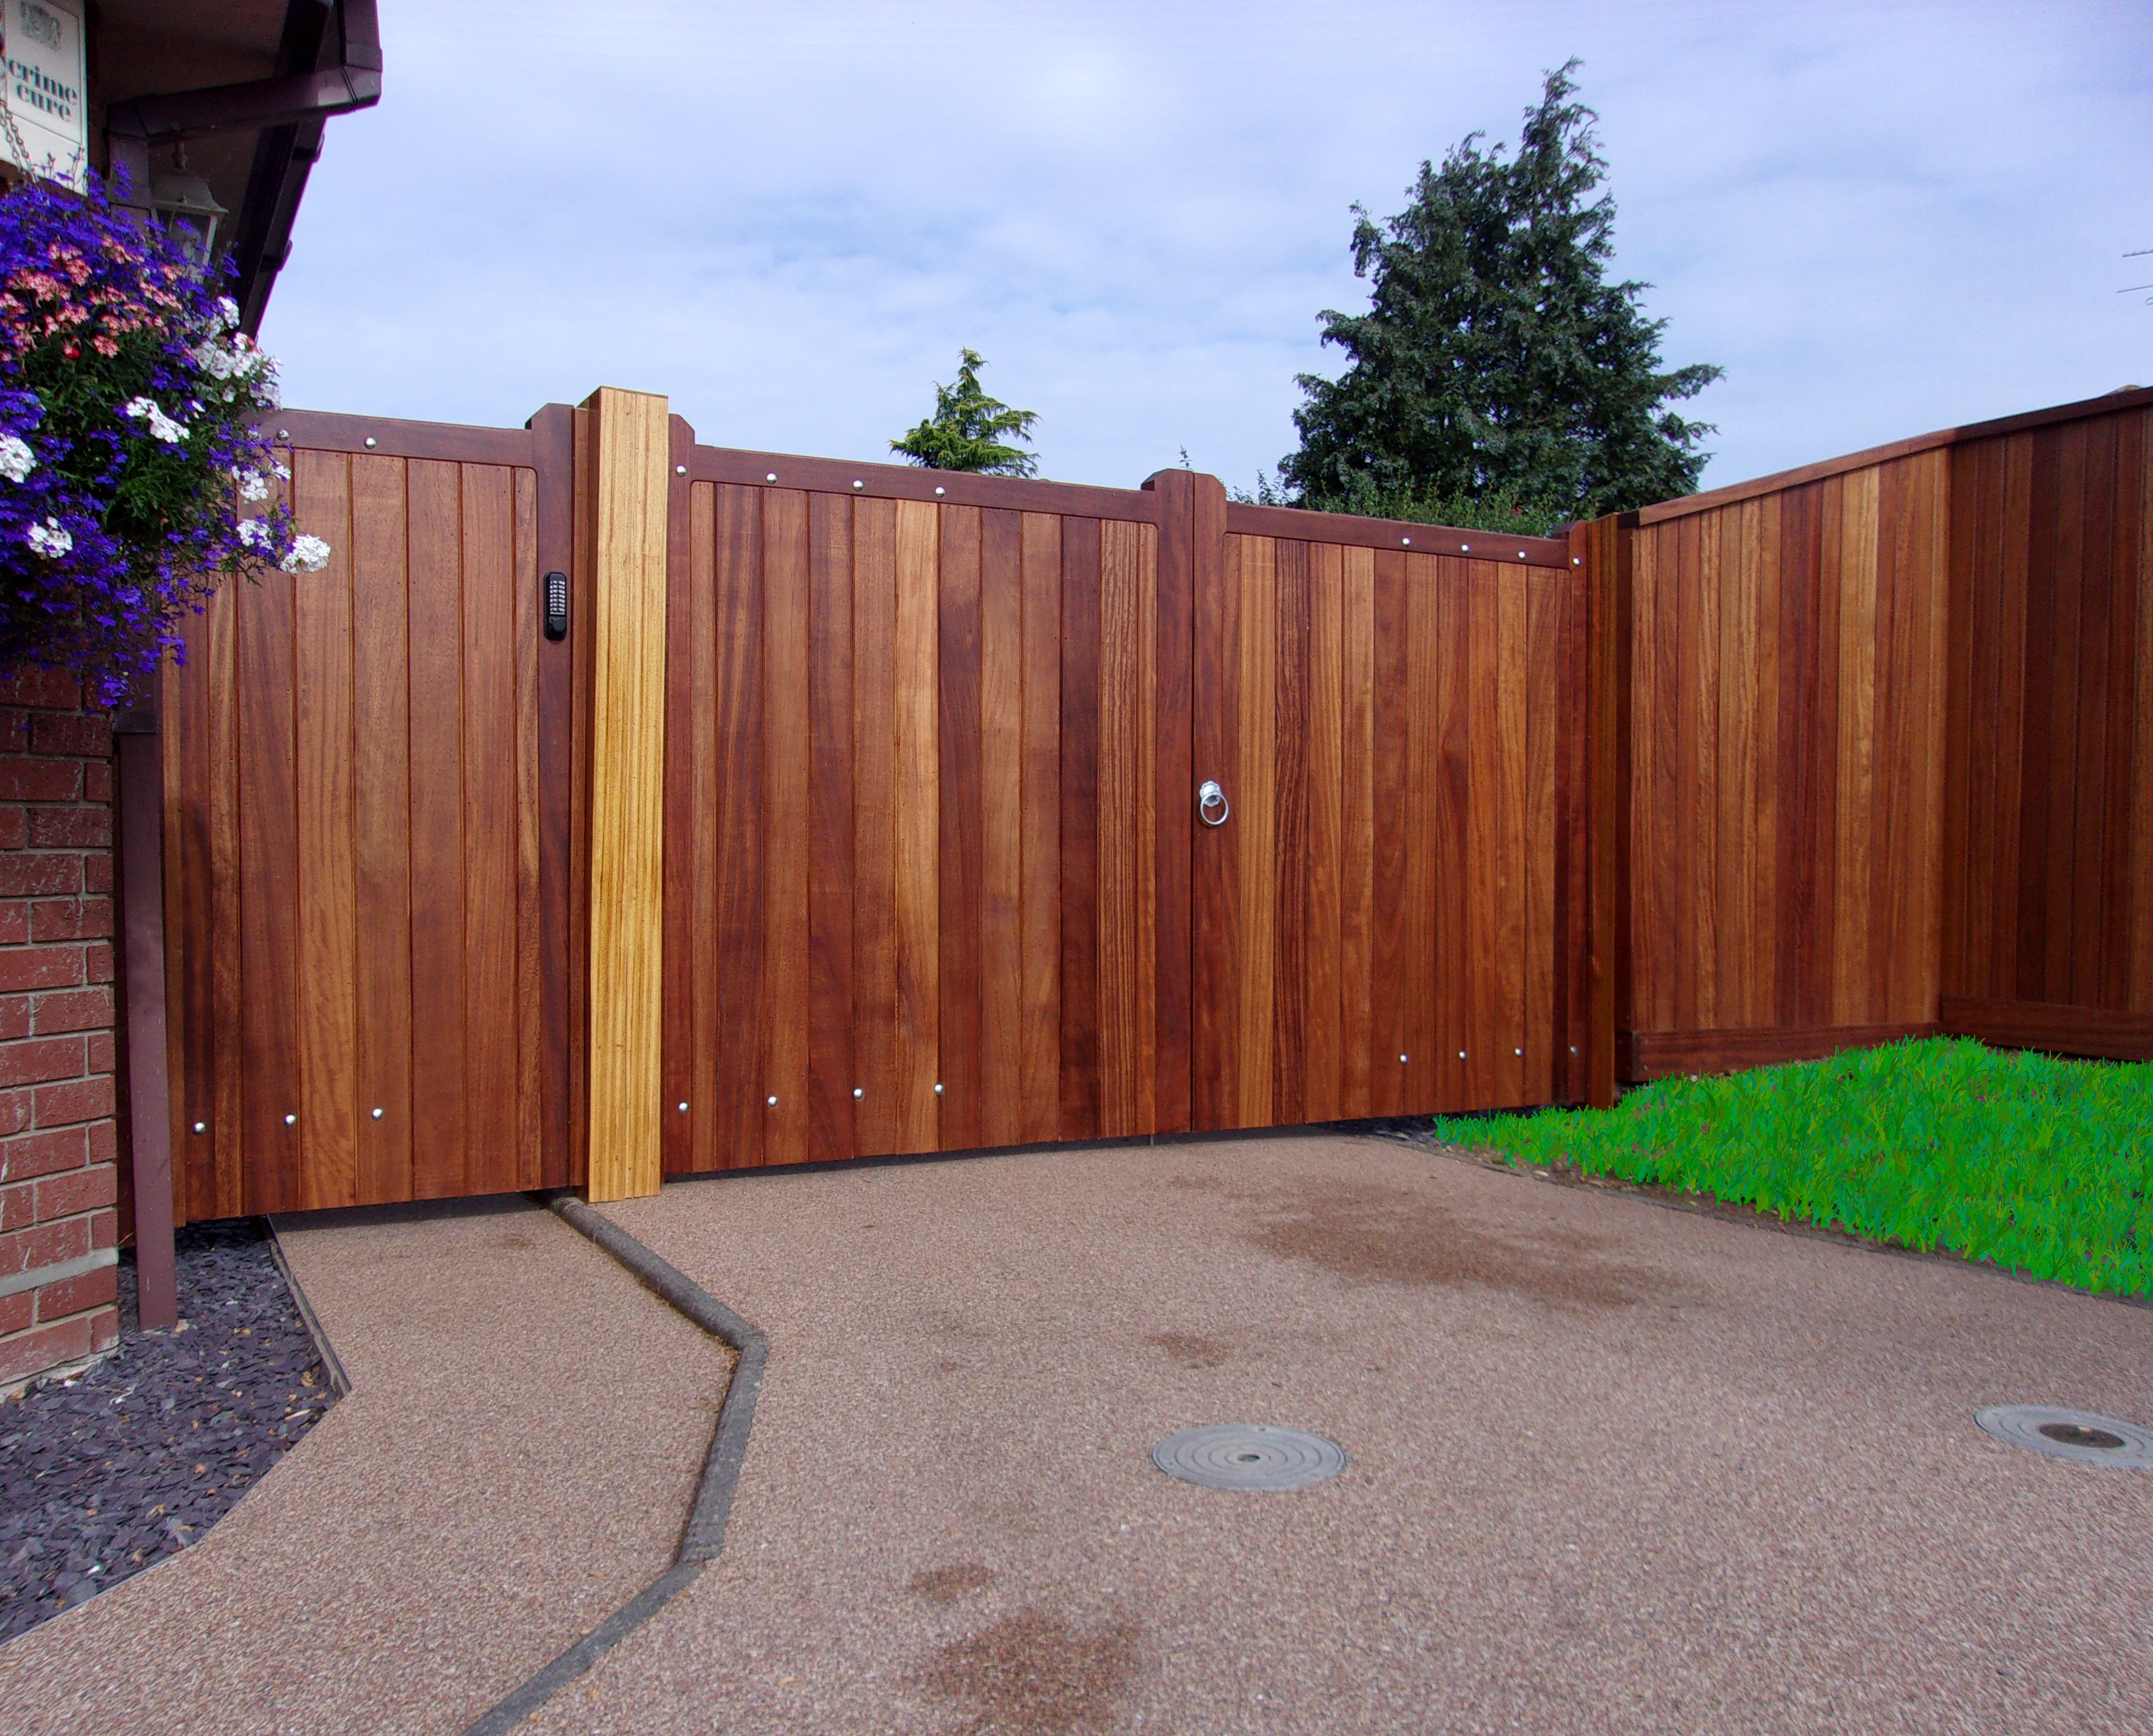 Blyth Pedestrian Gate, Entrance Gates and T&G fencing all in oiled Iroko